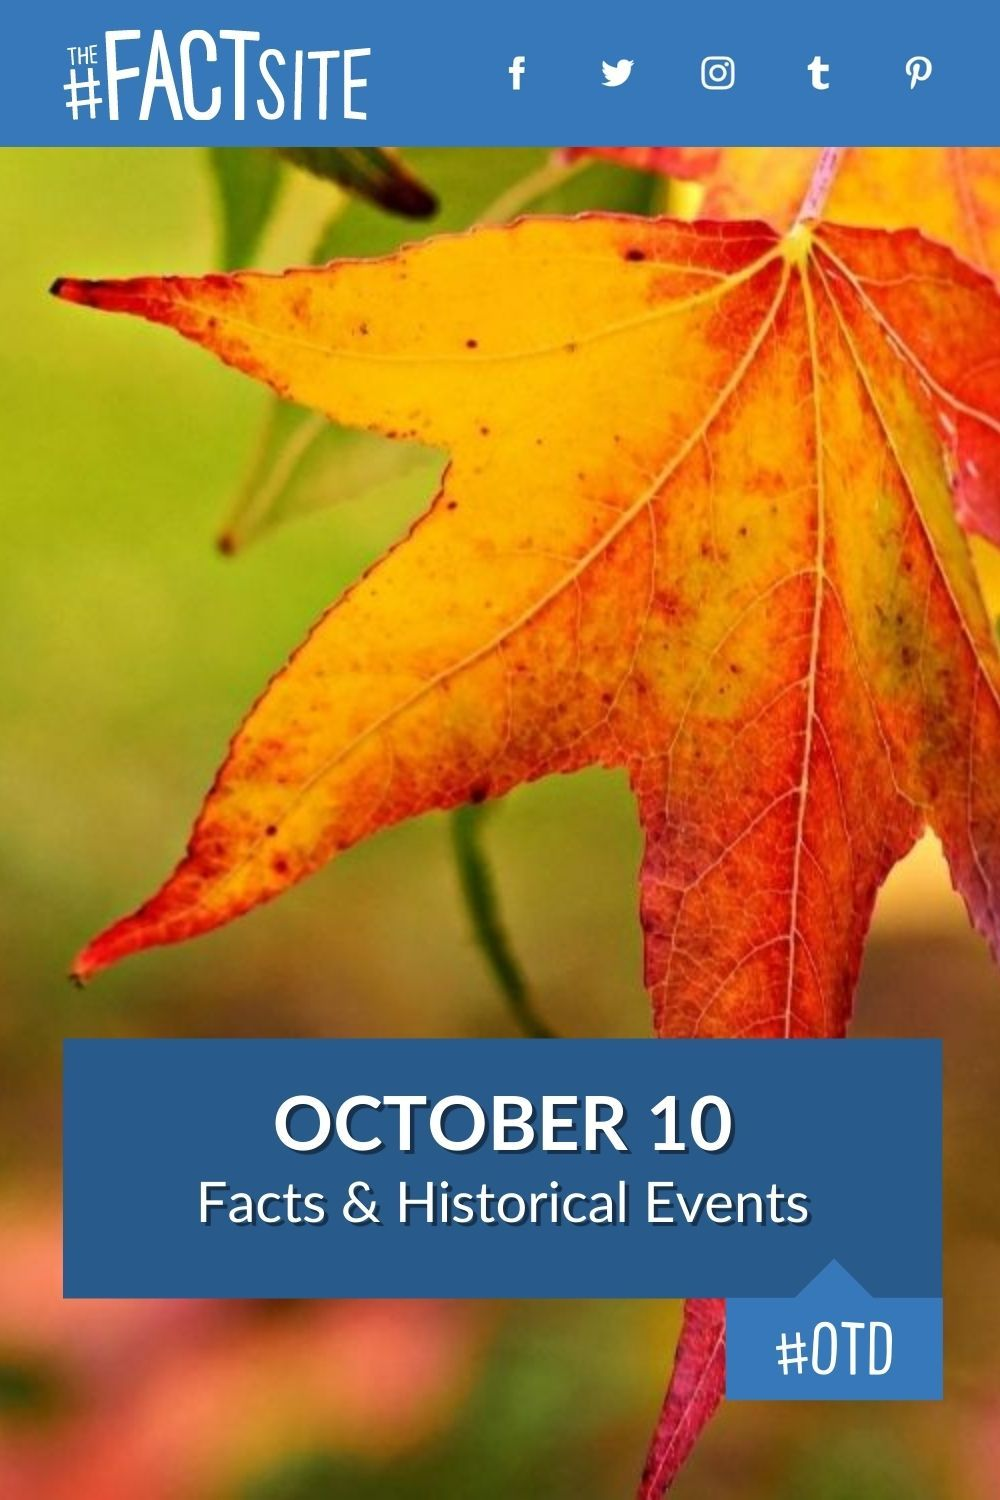 Facts & Historic Events That Happened on October 10